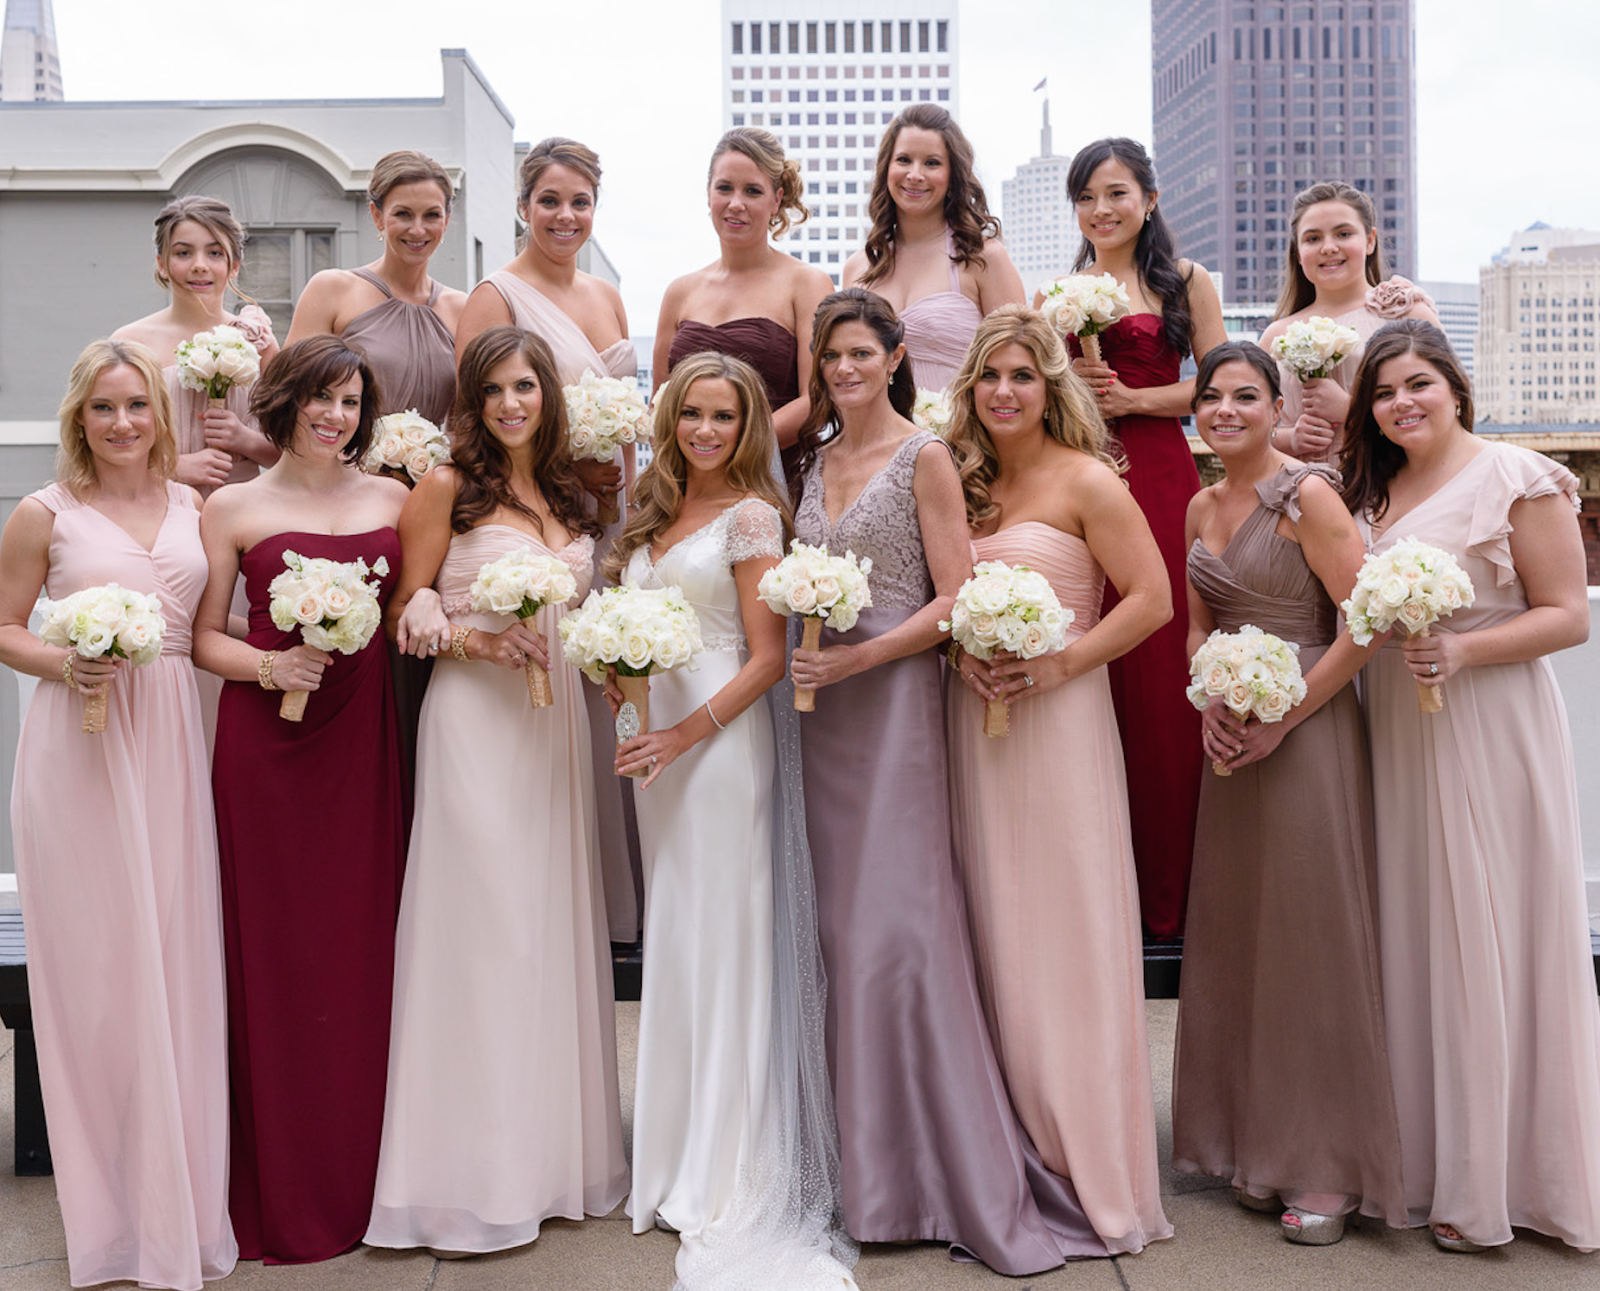 Bridesmaids in various dress colours pinksburgundyblushtaupe bridesmaids in various dress colours pinksburgundyblushtaupe ombrellifo Choice Image